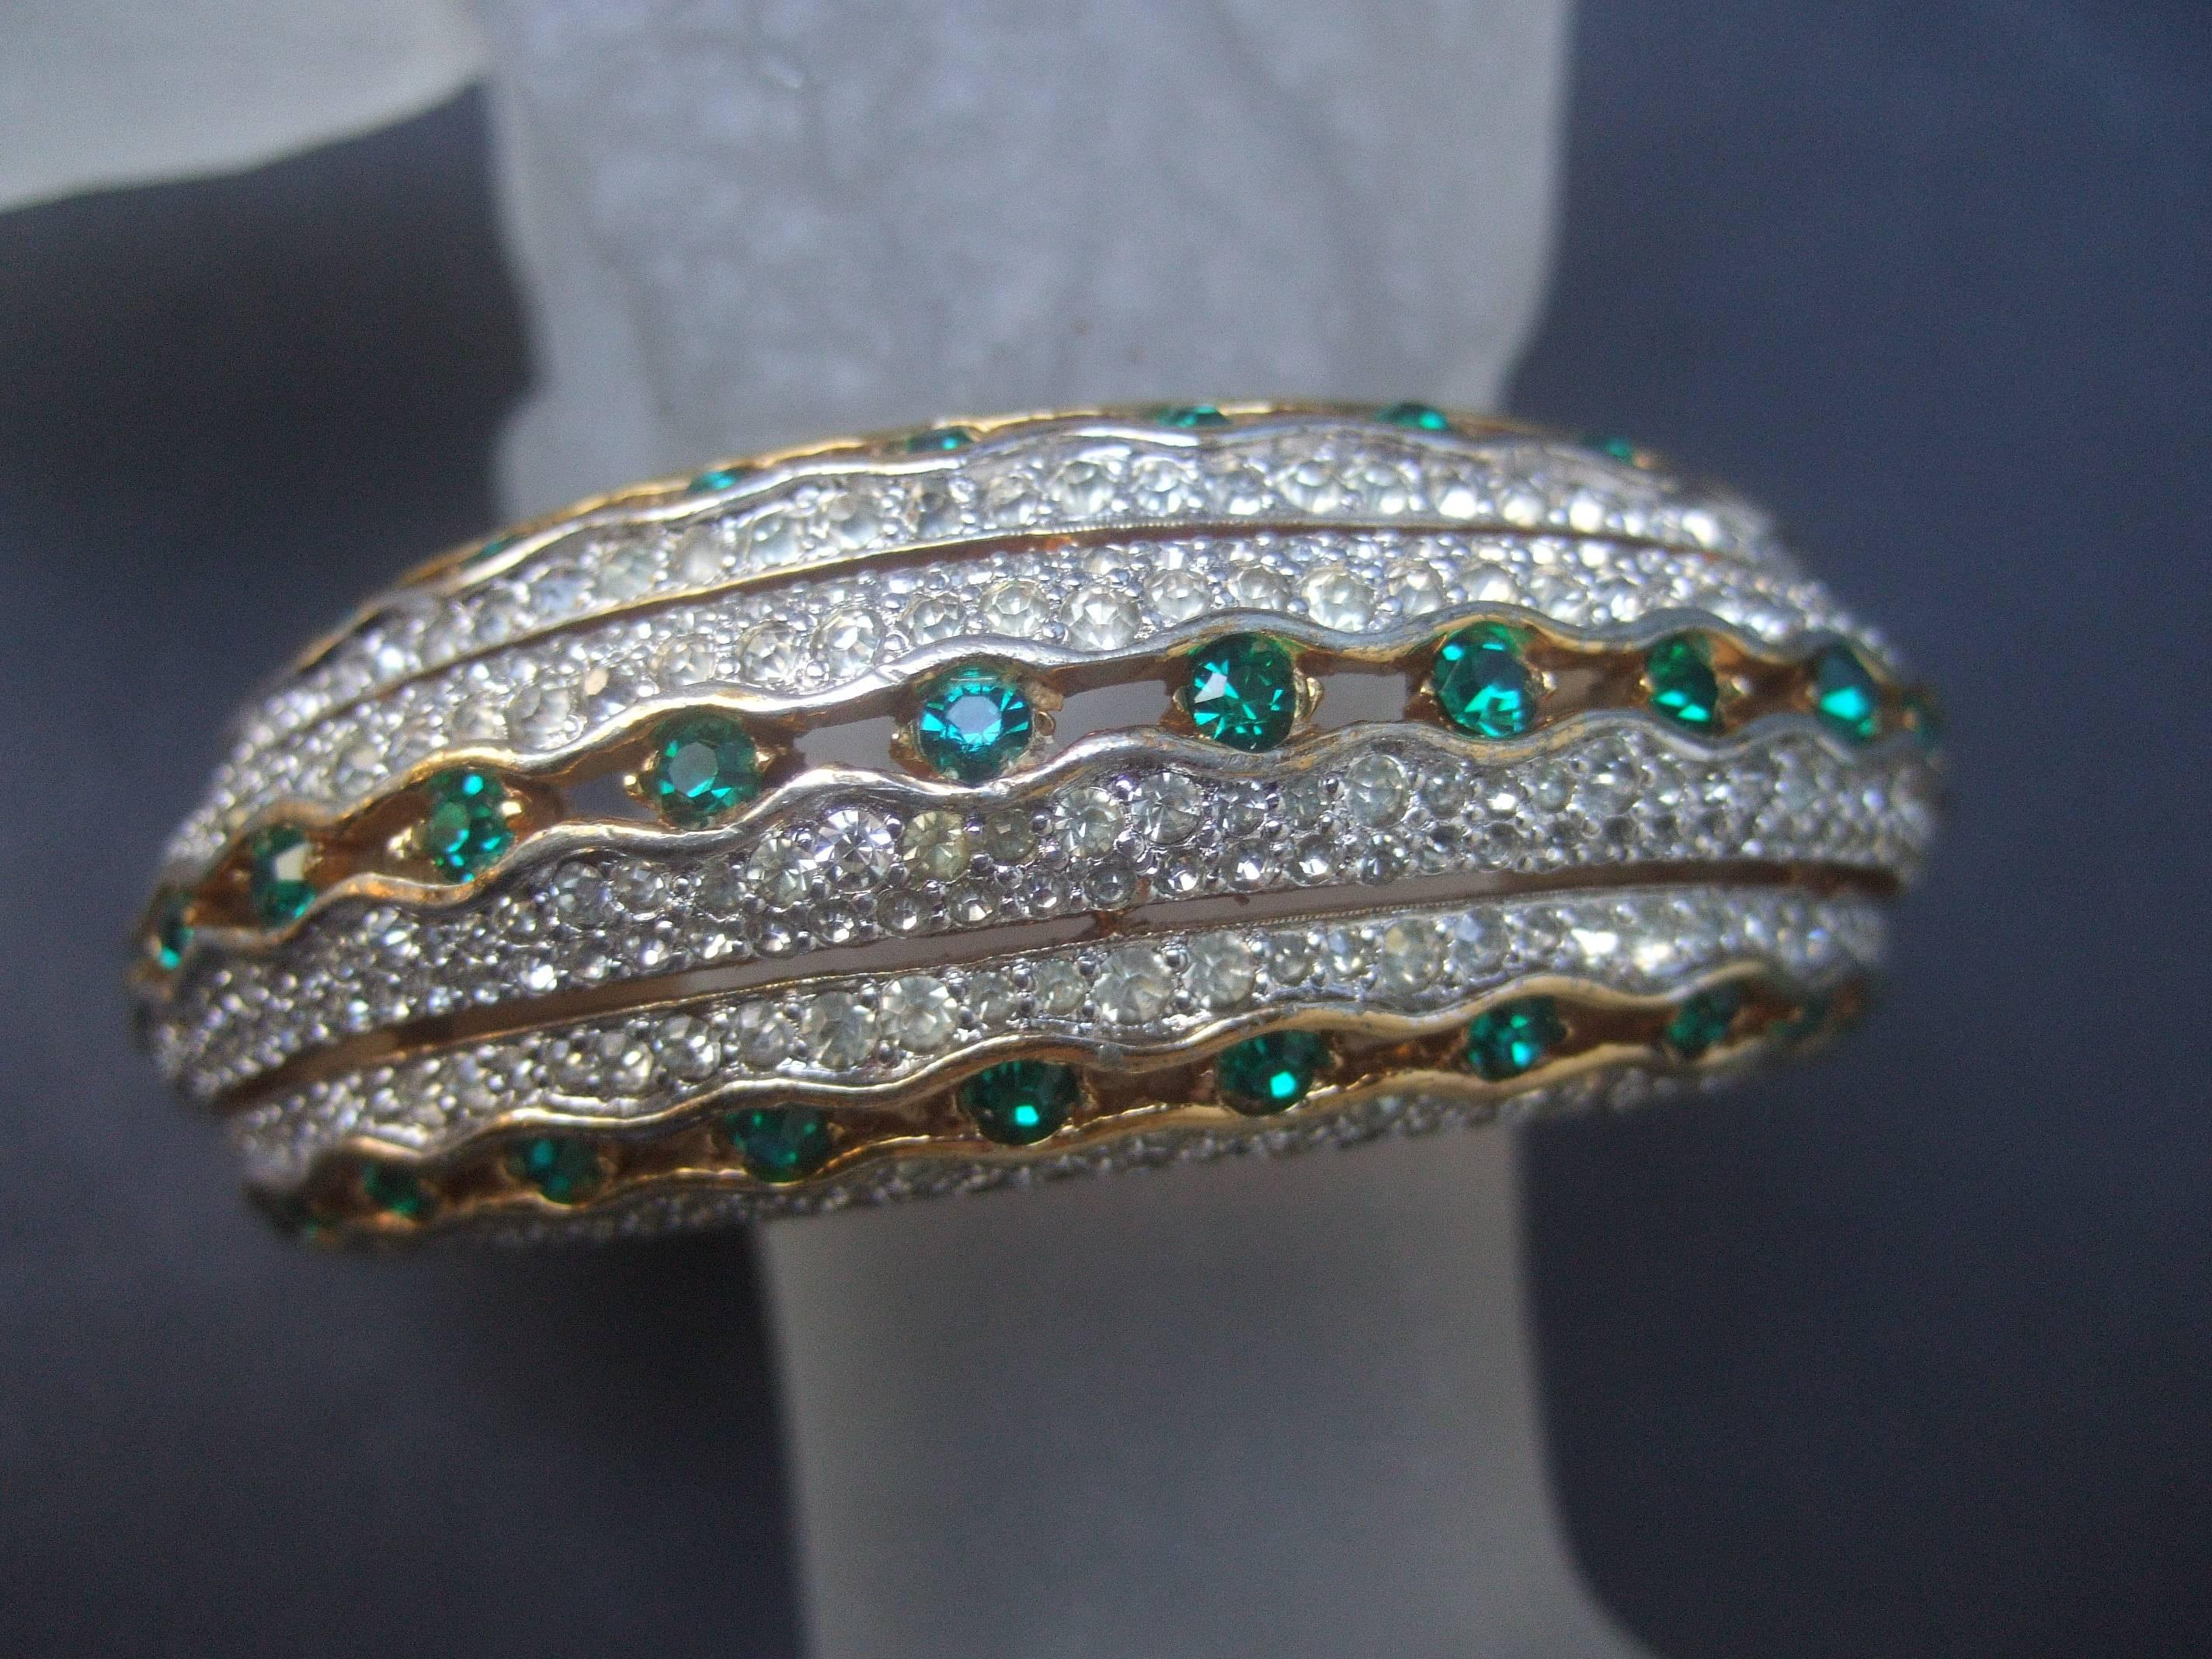 Exquisite Colored Design Bracelet Hinged Bangle Women Fashion Costume Jewelry